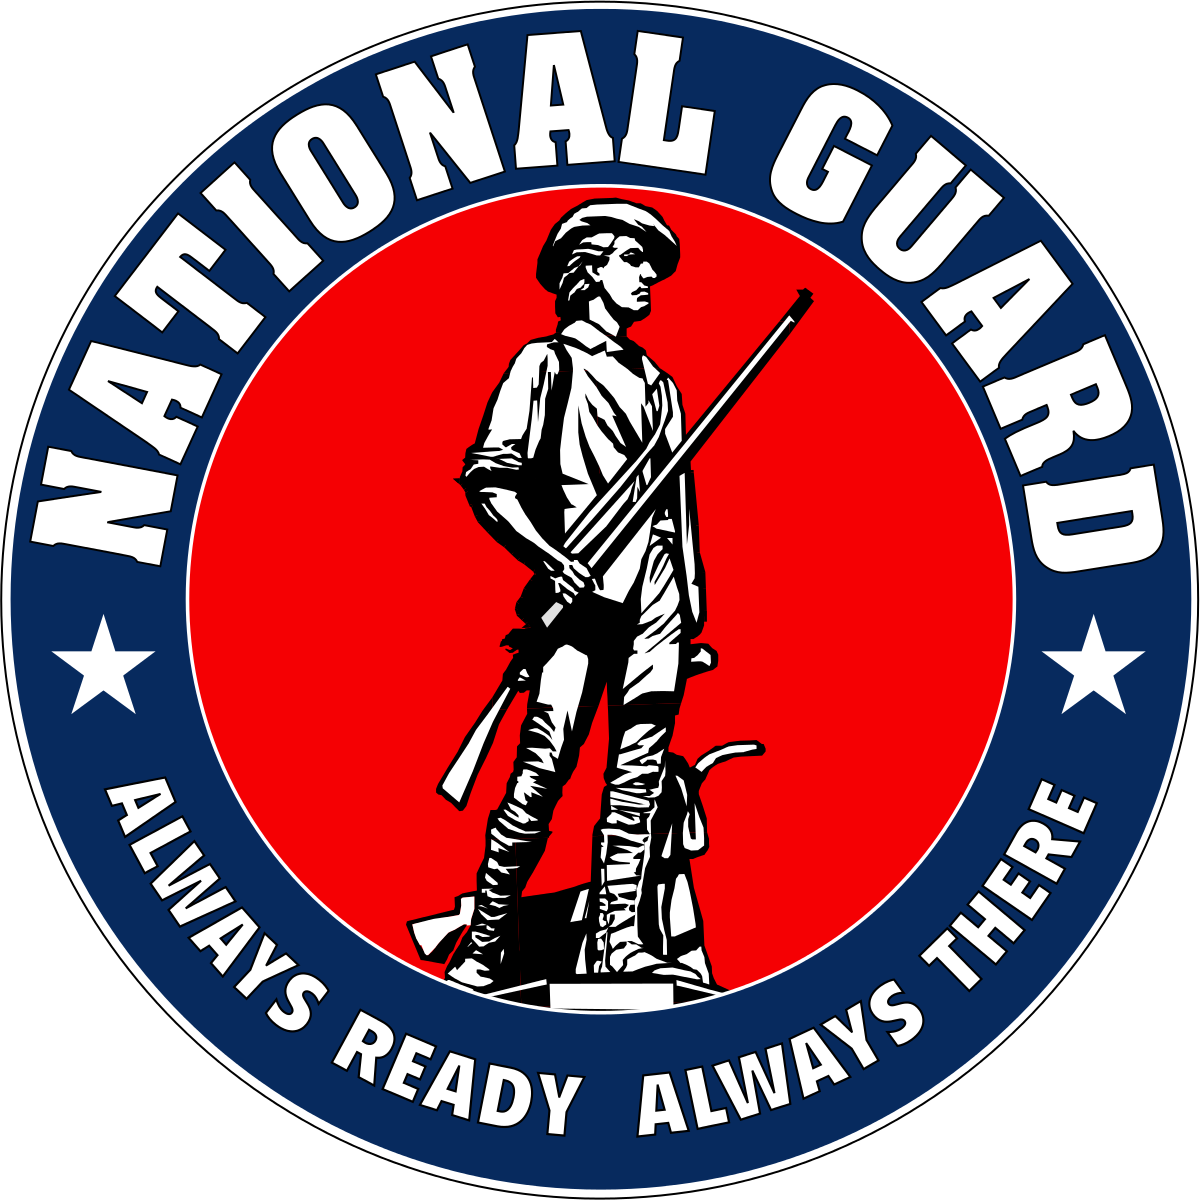 Military clipart national security. United states guard wikipedia